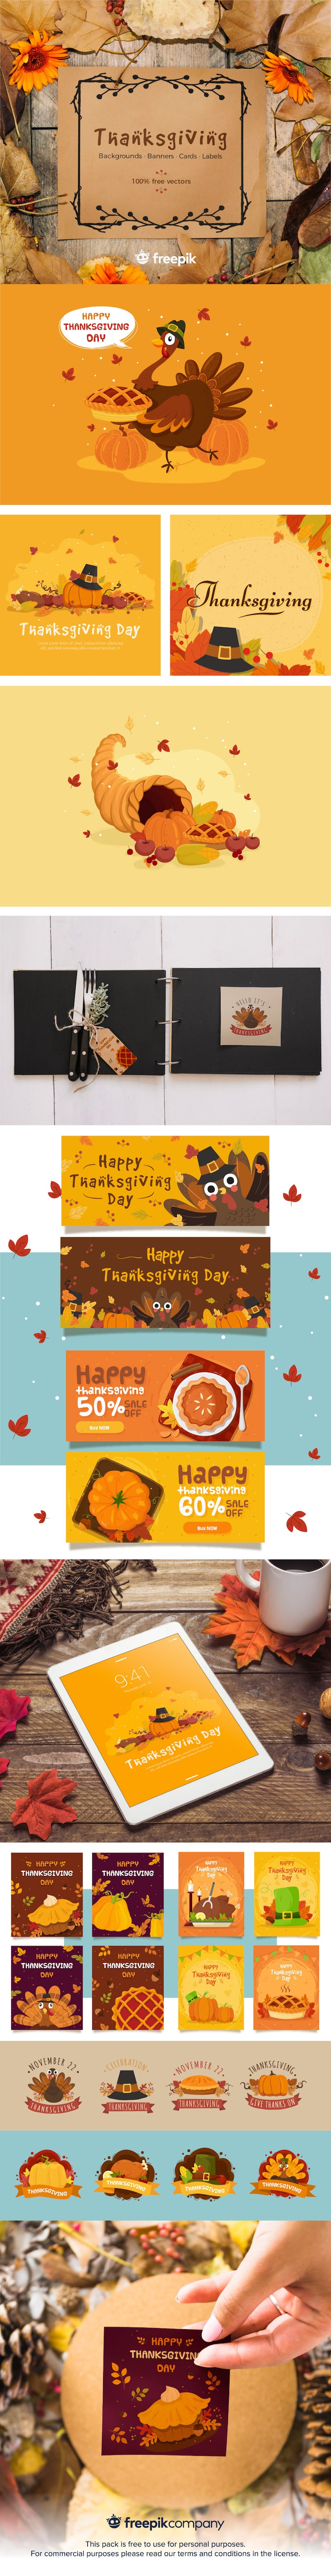 Free Thanksgiving Backgrounds, Cards & More